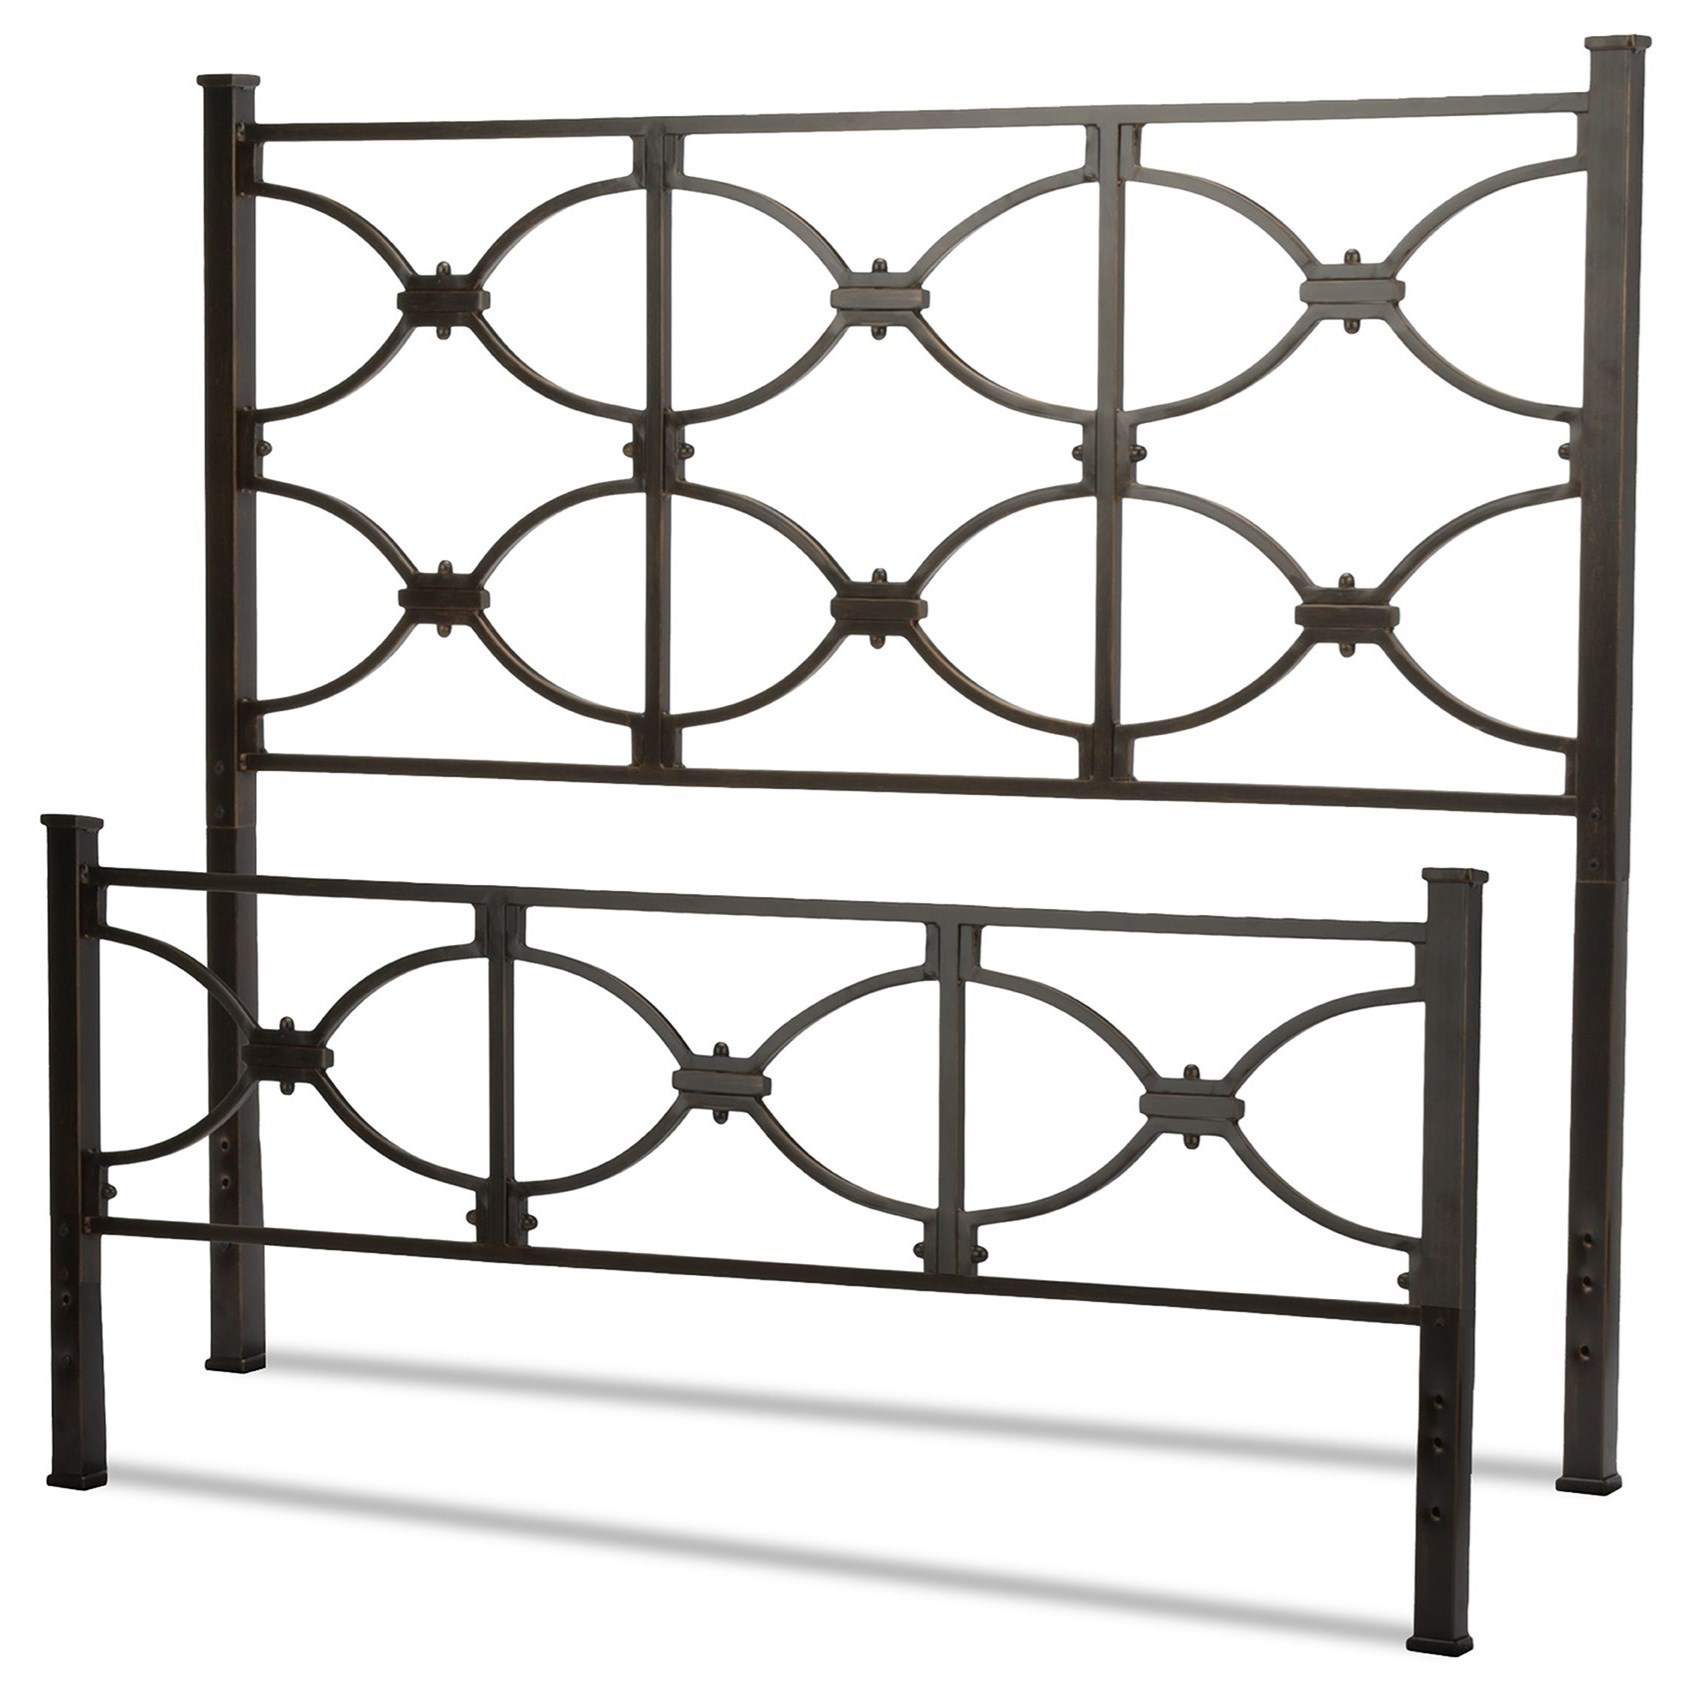 Fashion Bed Group Metal Beds Queen Marlo Headboard And Footboard With Metal Panels And Squared